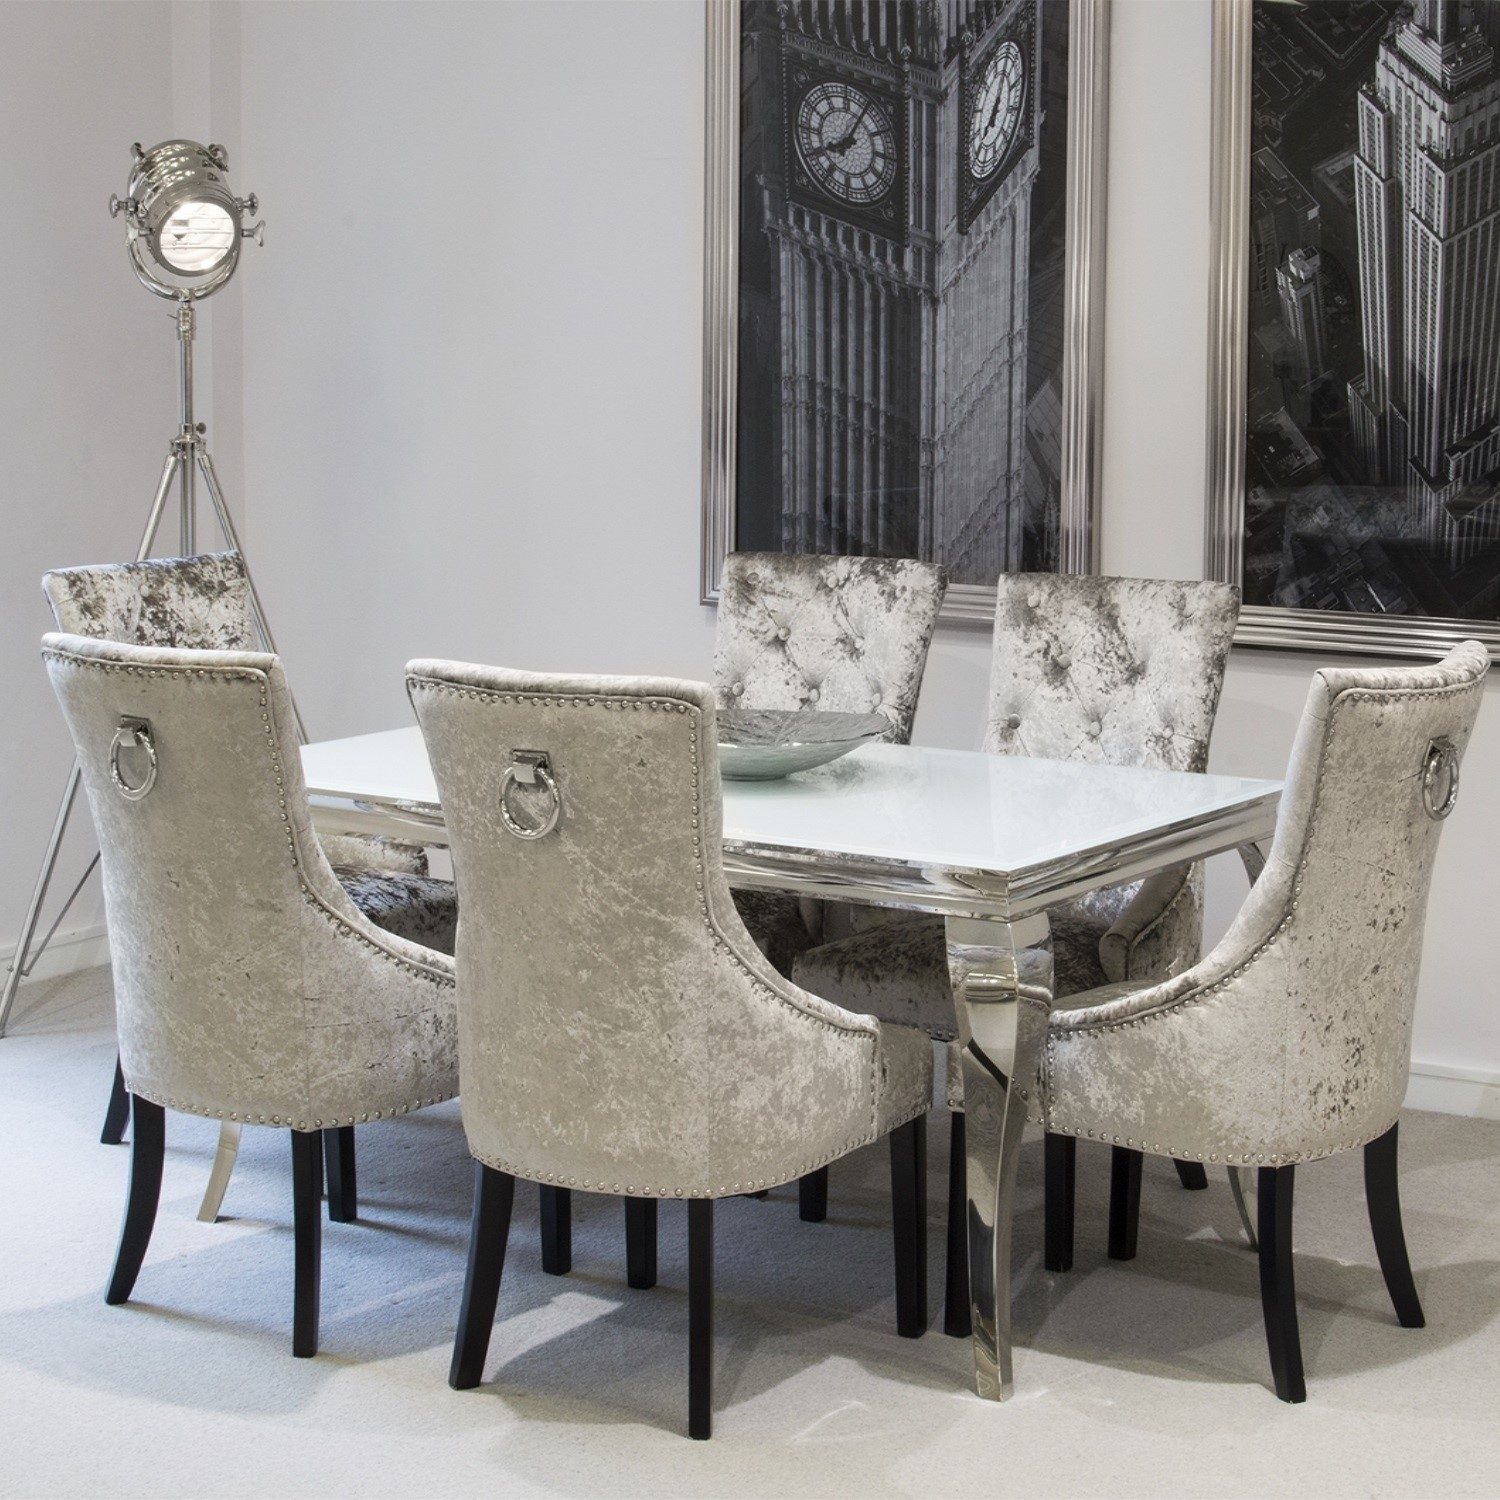 Beautiful Wilkinson Furniture Louis 160cm White Dining Table And 6 Eden Mink  Knockerback Chairs